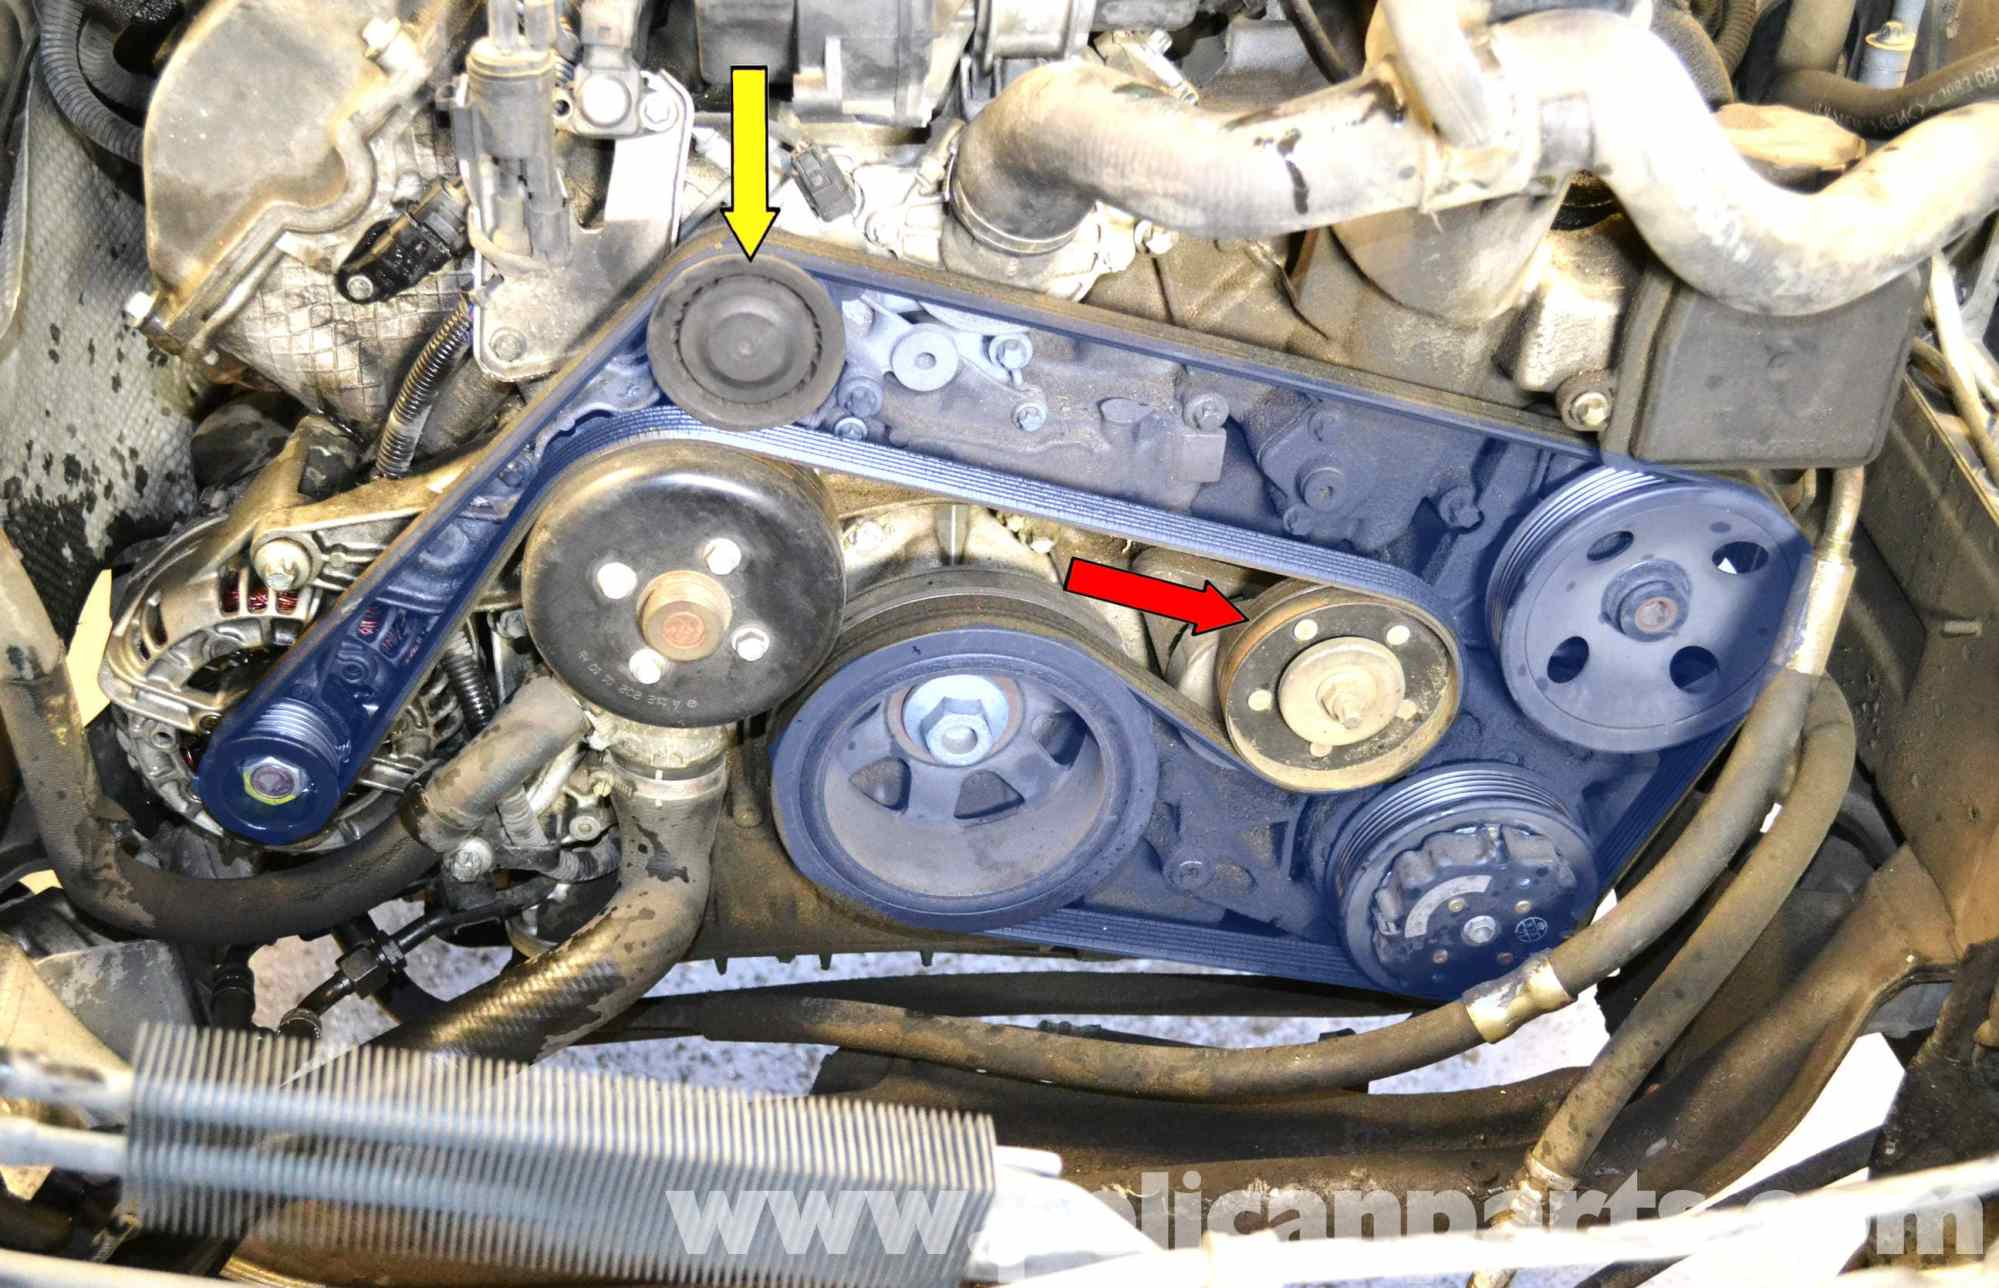 hight resolution of mercedes benz w203 engine diagram wiring diagram toolbox mercedes w203 engine diagram mercedes benz w203 water